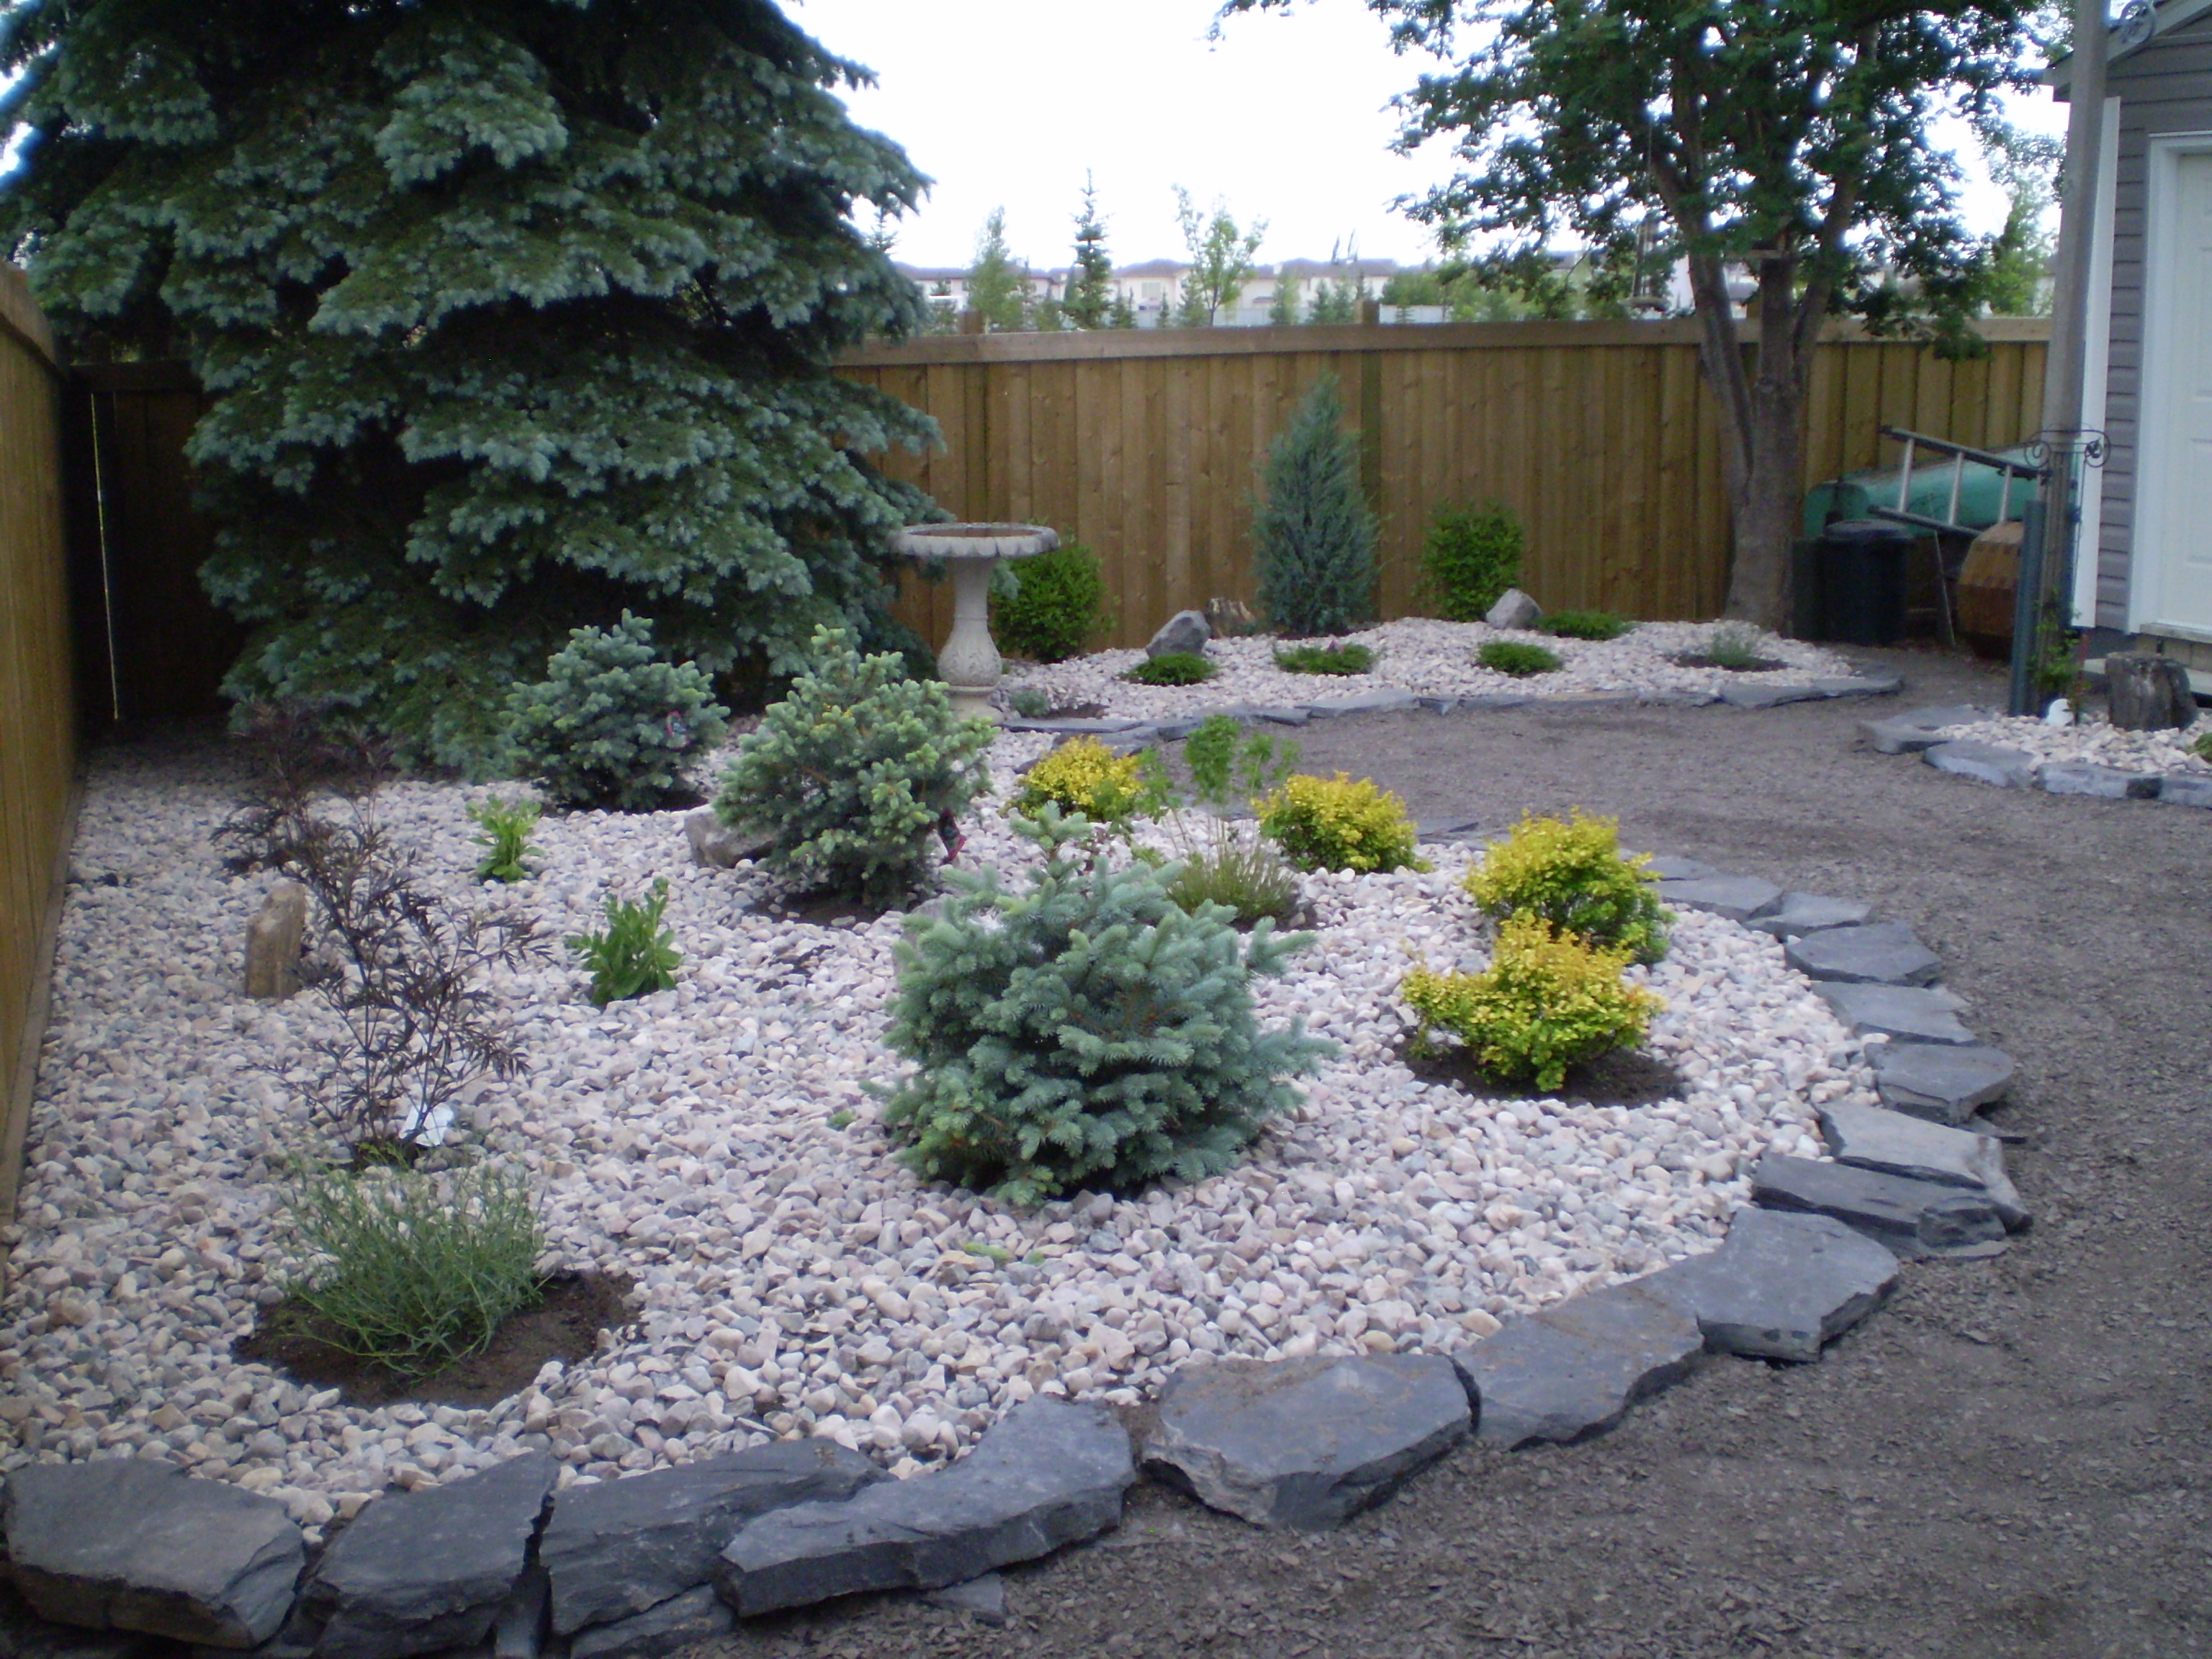 Maintenance Free Backyard Landscaping :  Landscaping and Garden Center Edmonton Edmonton Alberta Landscaping